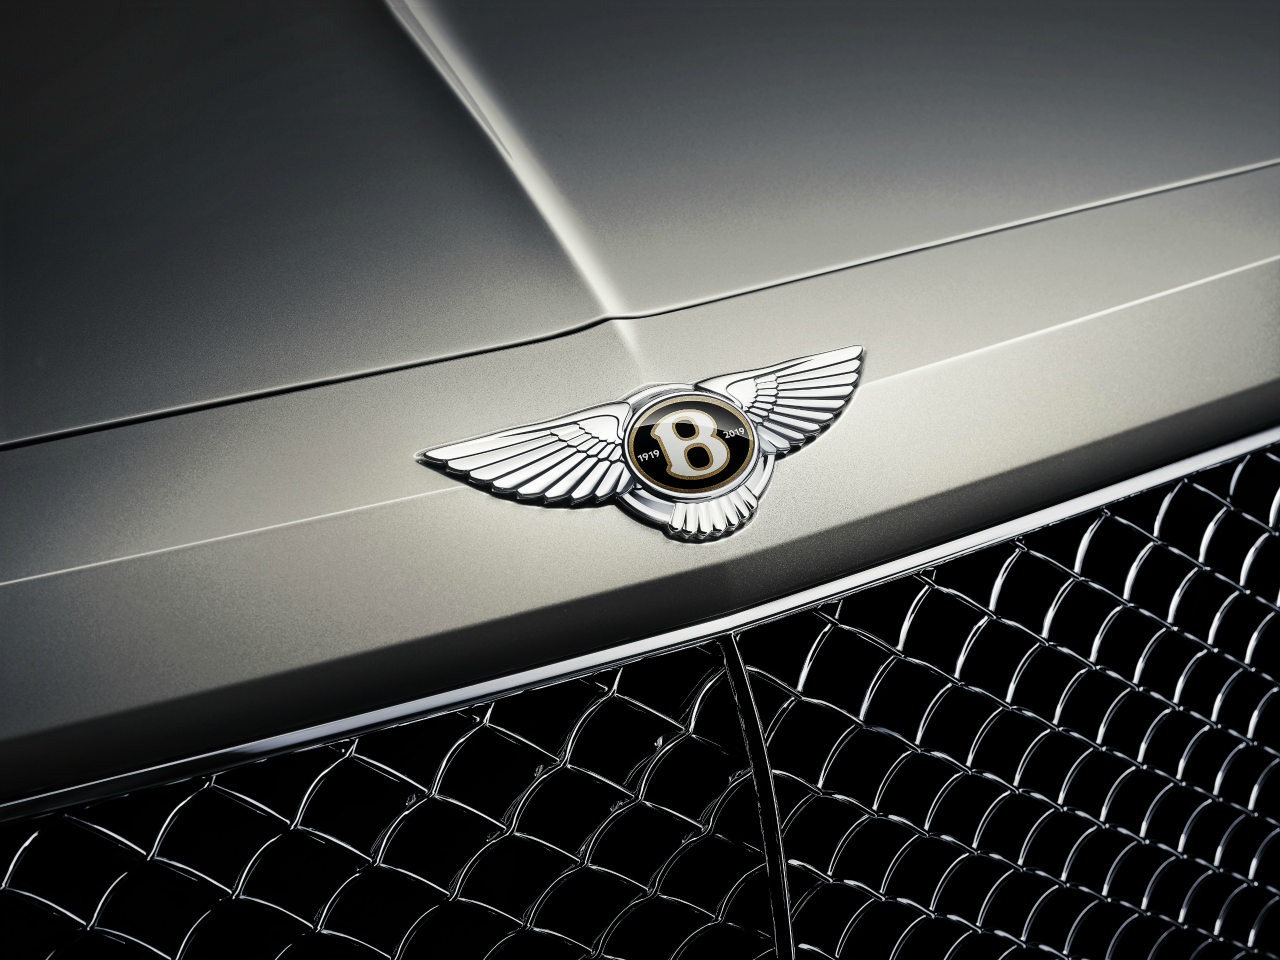 All 2019 Bentley Models will get Special, Limited Edition Badges